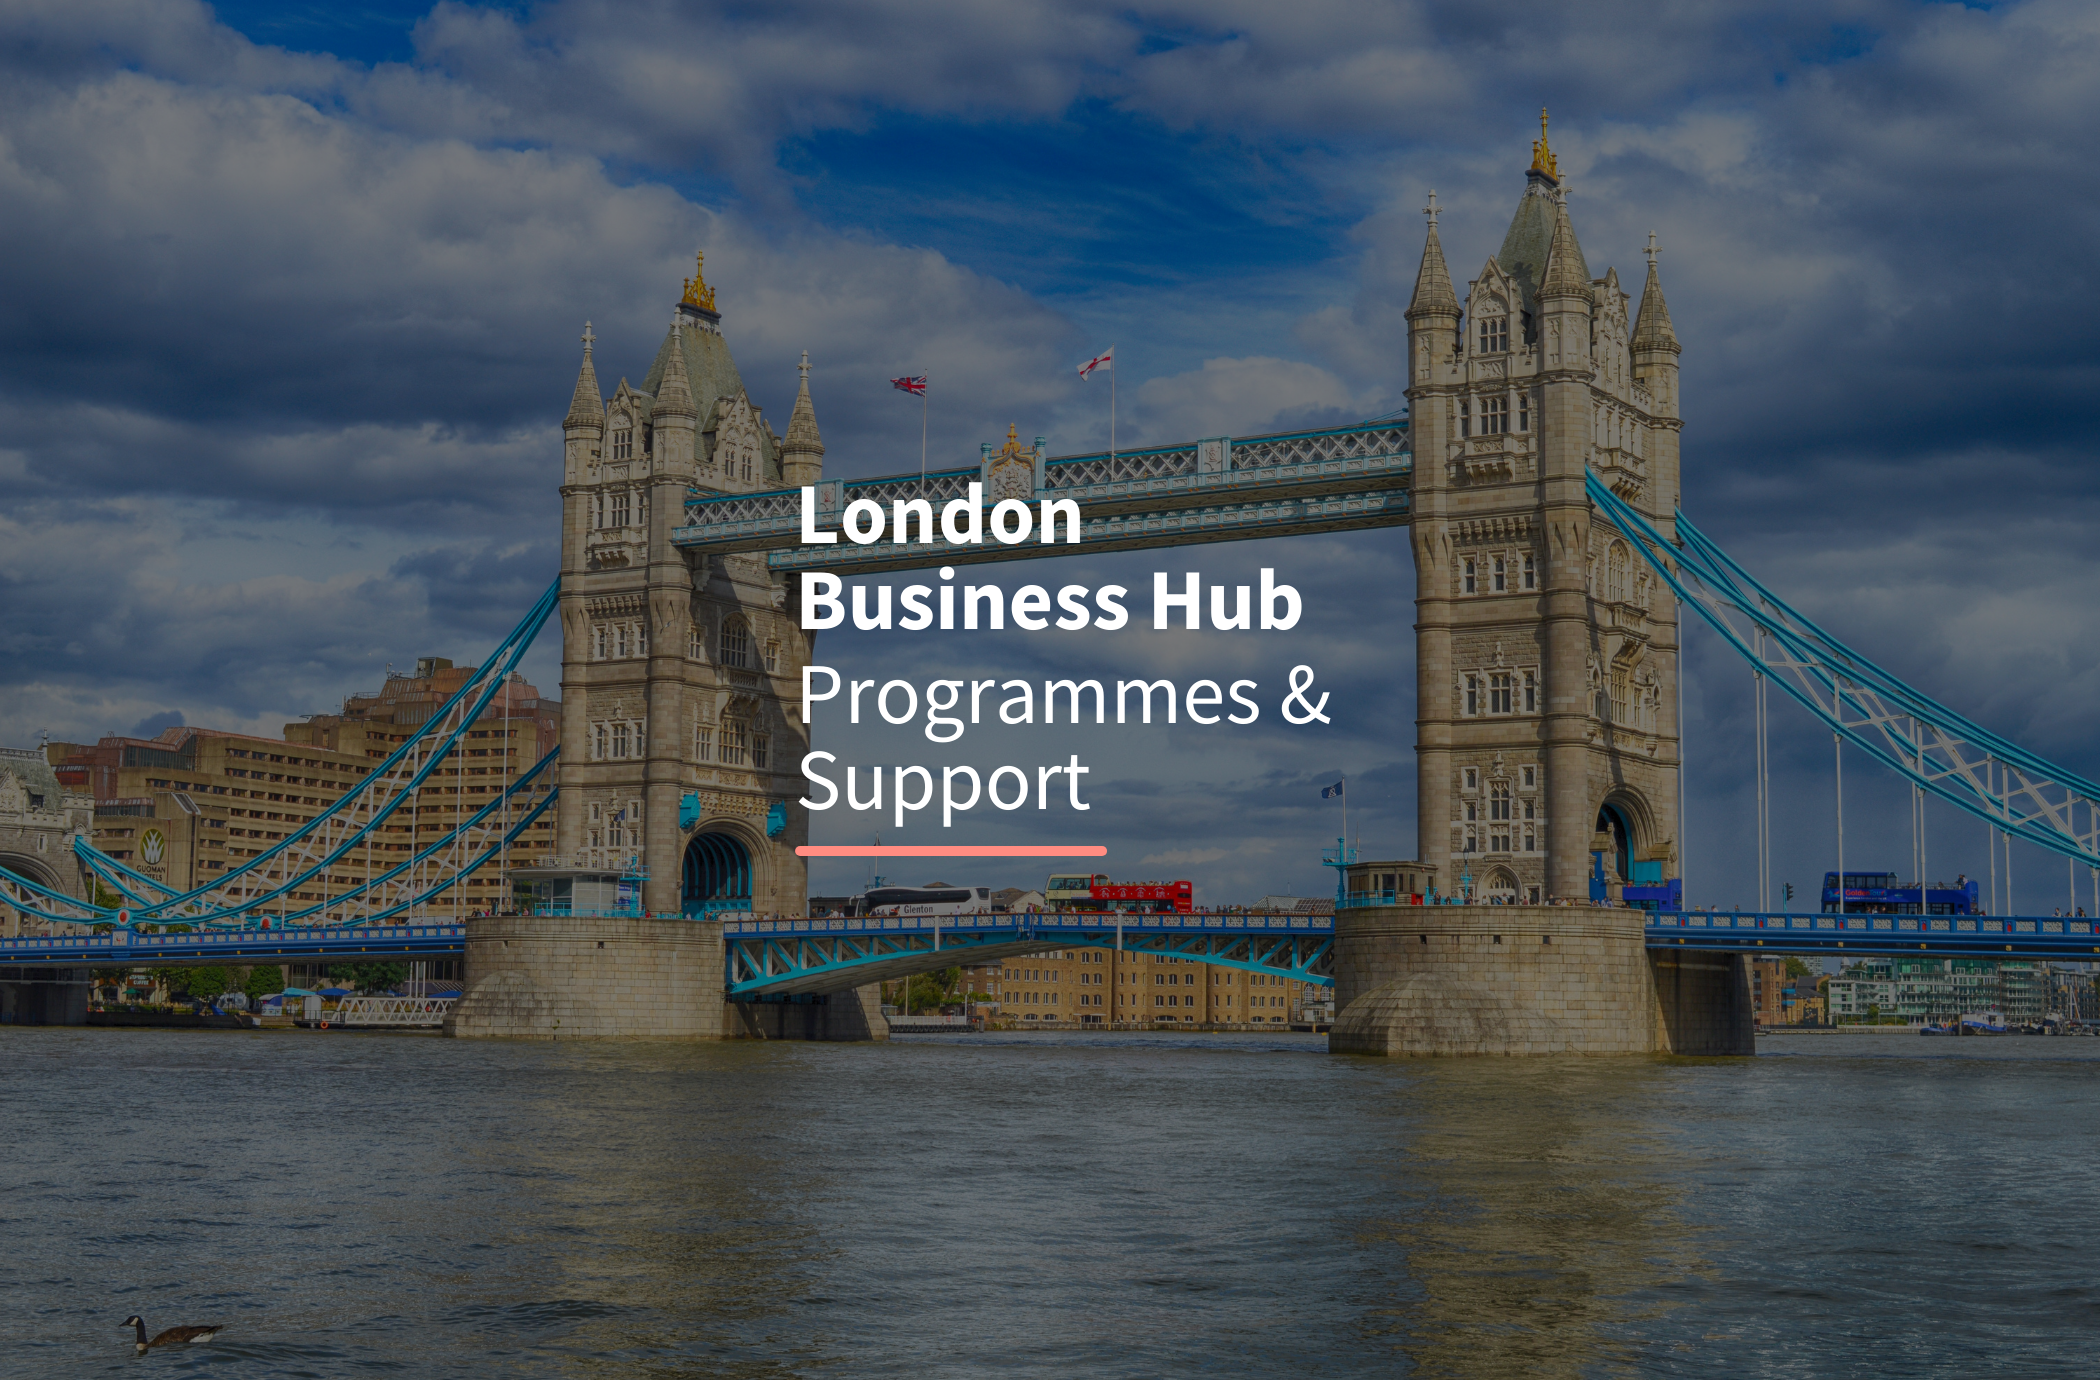 Support from London Business Hub